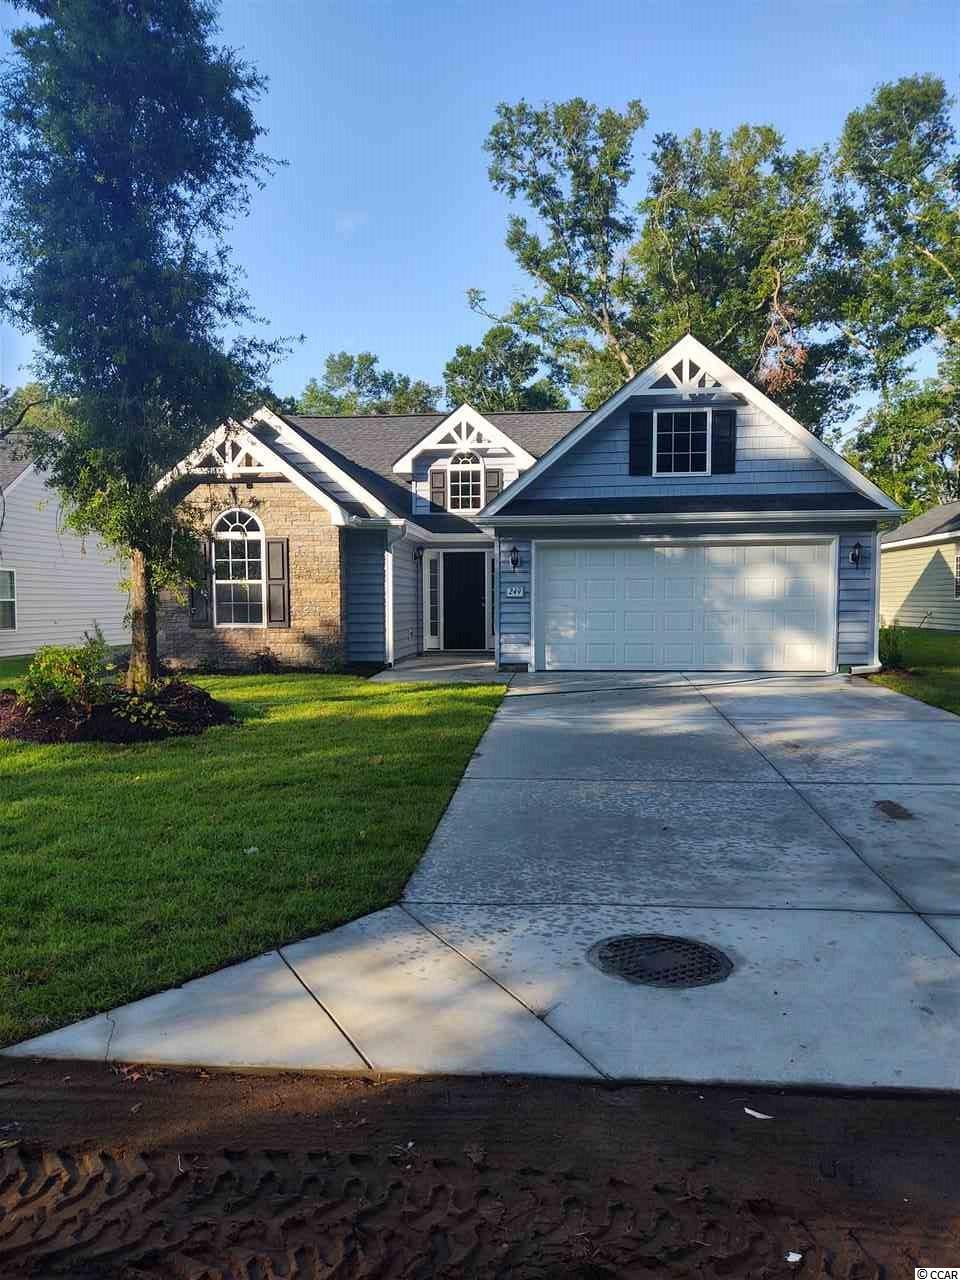 This is the Wando plan with 3 bedrooms and 2 baths, stacked stone accent and screen porch. Granite counter tops and stainless steel appliances in kitchen. Luxury Vinyl Plank Flooring thru entire house. No HOA so privacy fences and boats are allowed. There are many prestigious golf courses just minutes away and also Brookgreen Gardens, Huntington Beach State Park and the Murrells Inlet Marshwalk. There are only a few lots left and you don't want to miss out on this opportunity to live just minutes from the beautiful Litchfield and Pawleys Island beaches!!!